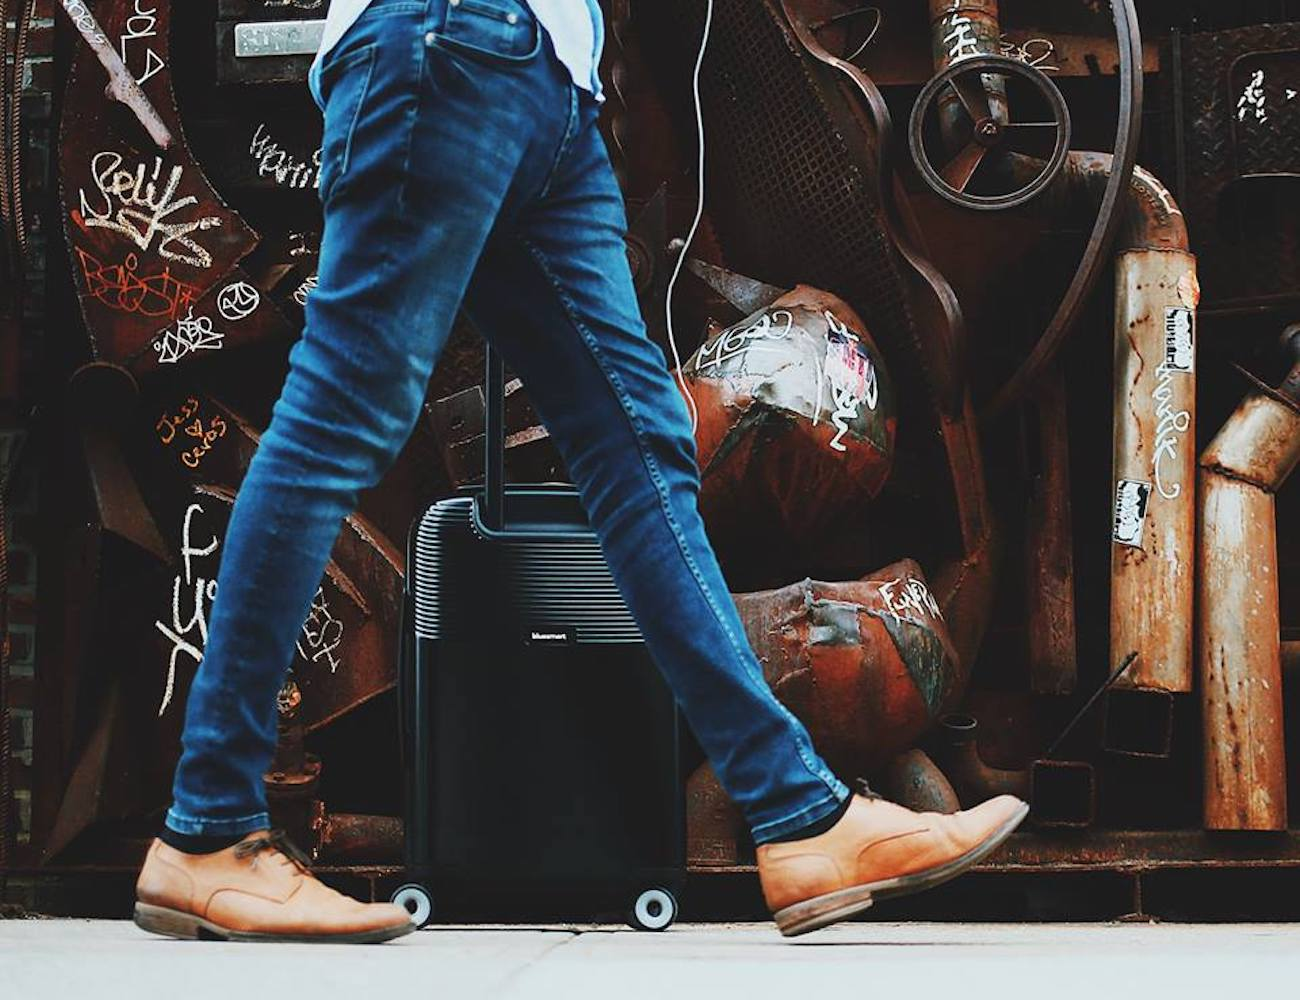 Bluesmart Series 2 Smart Luggage System